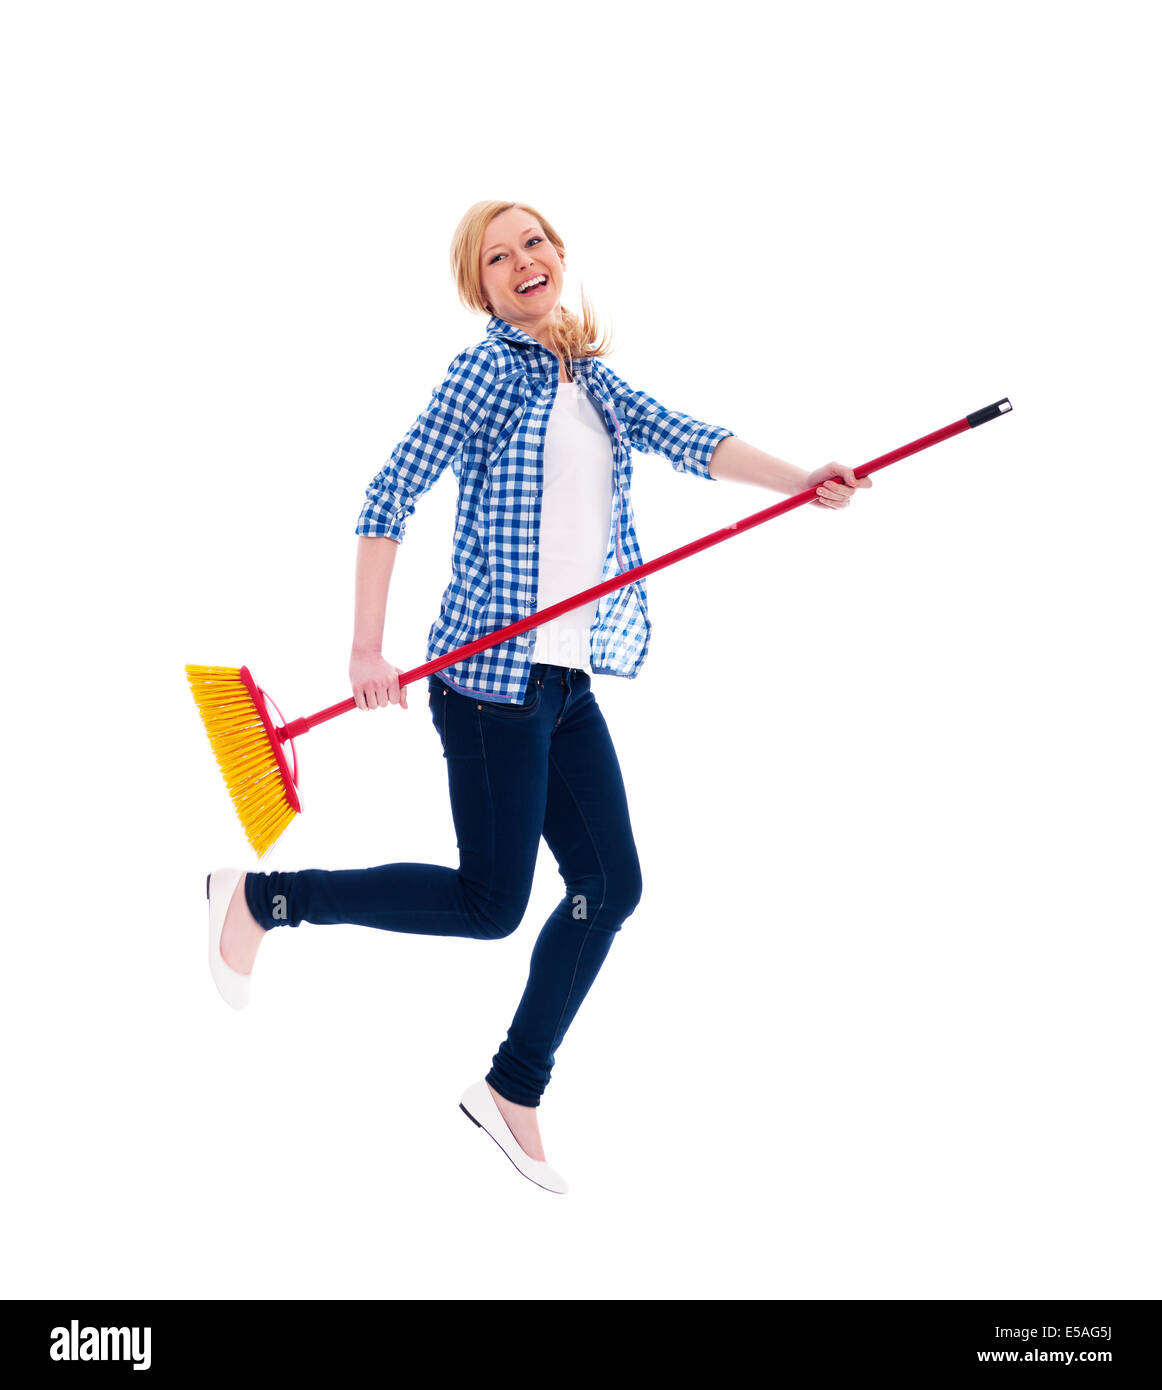 Broomstick Stock Photos Amp Broomstick Stock Images Alamy